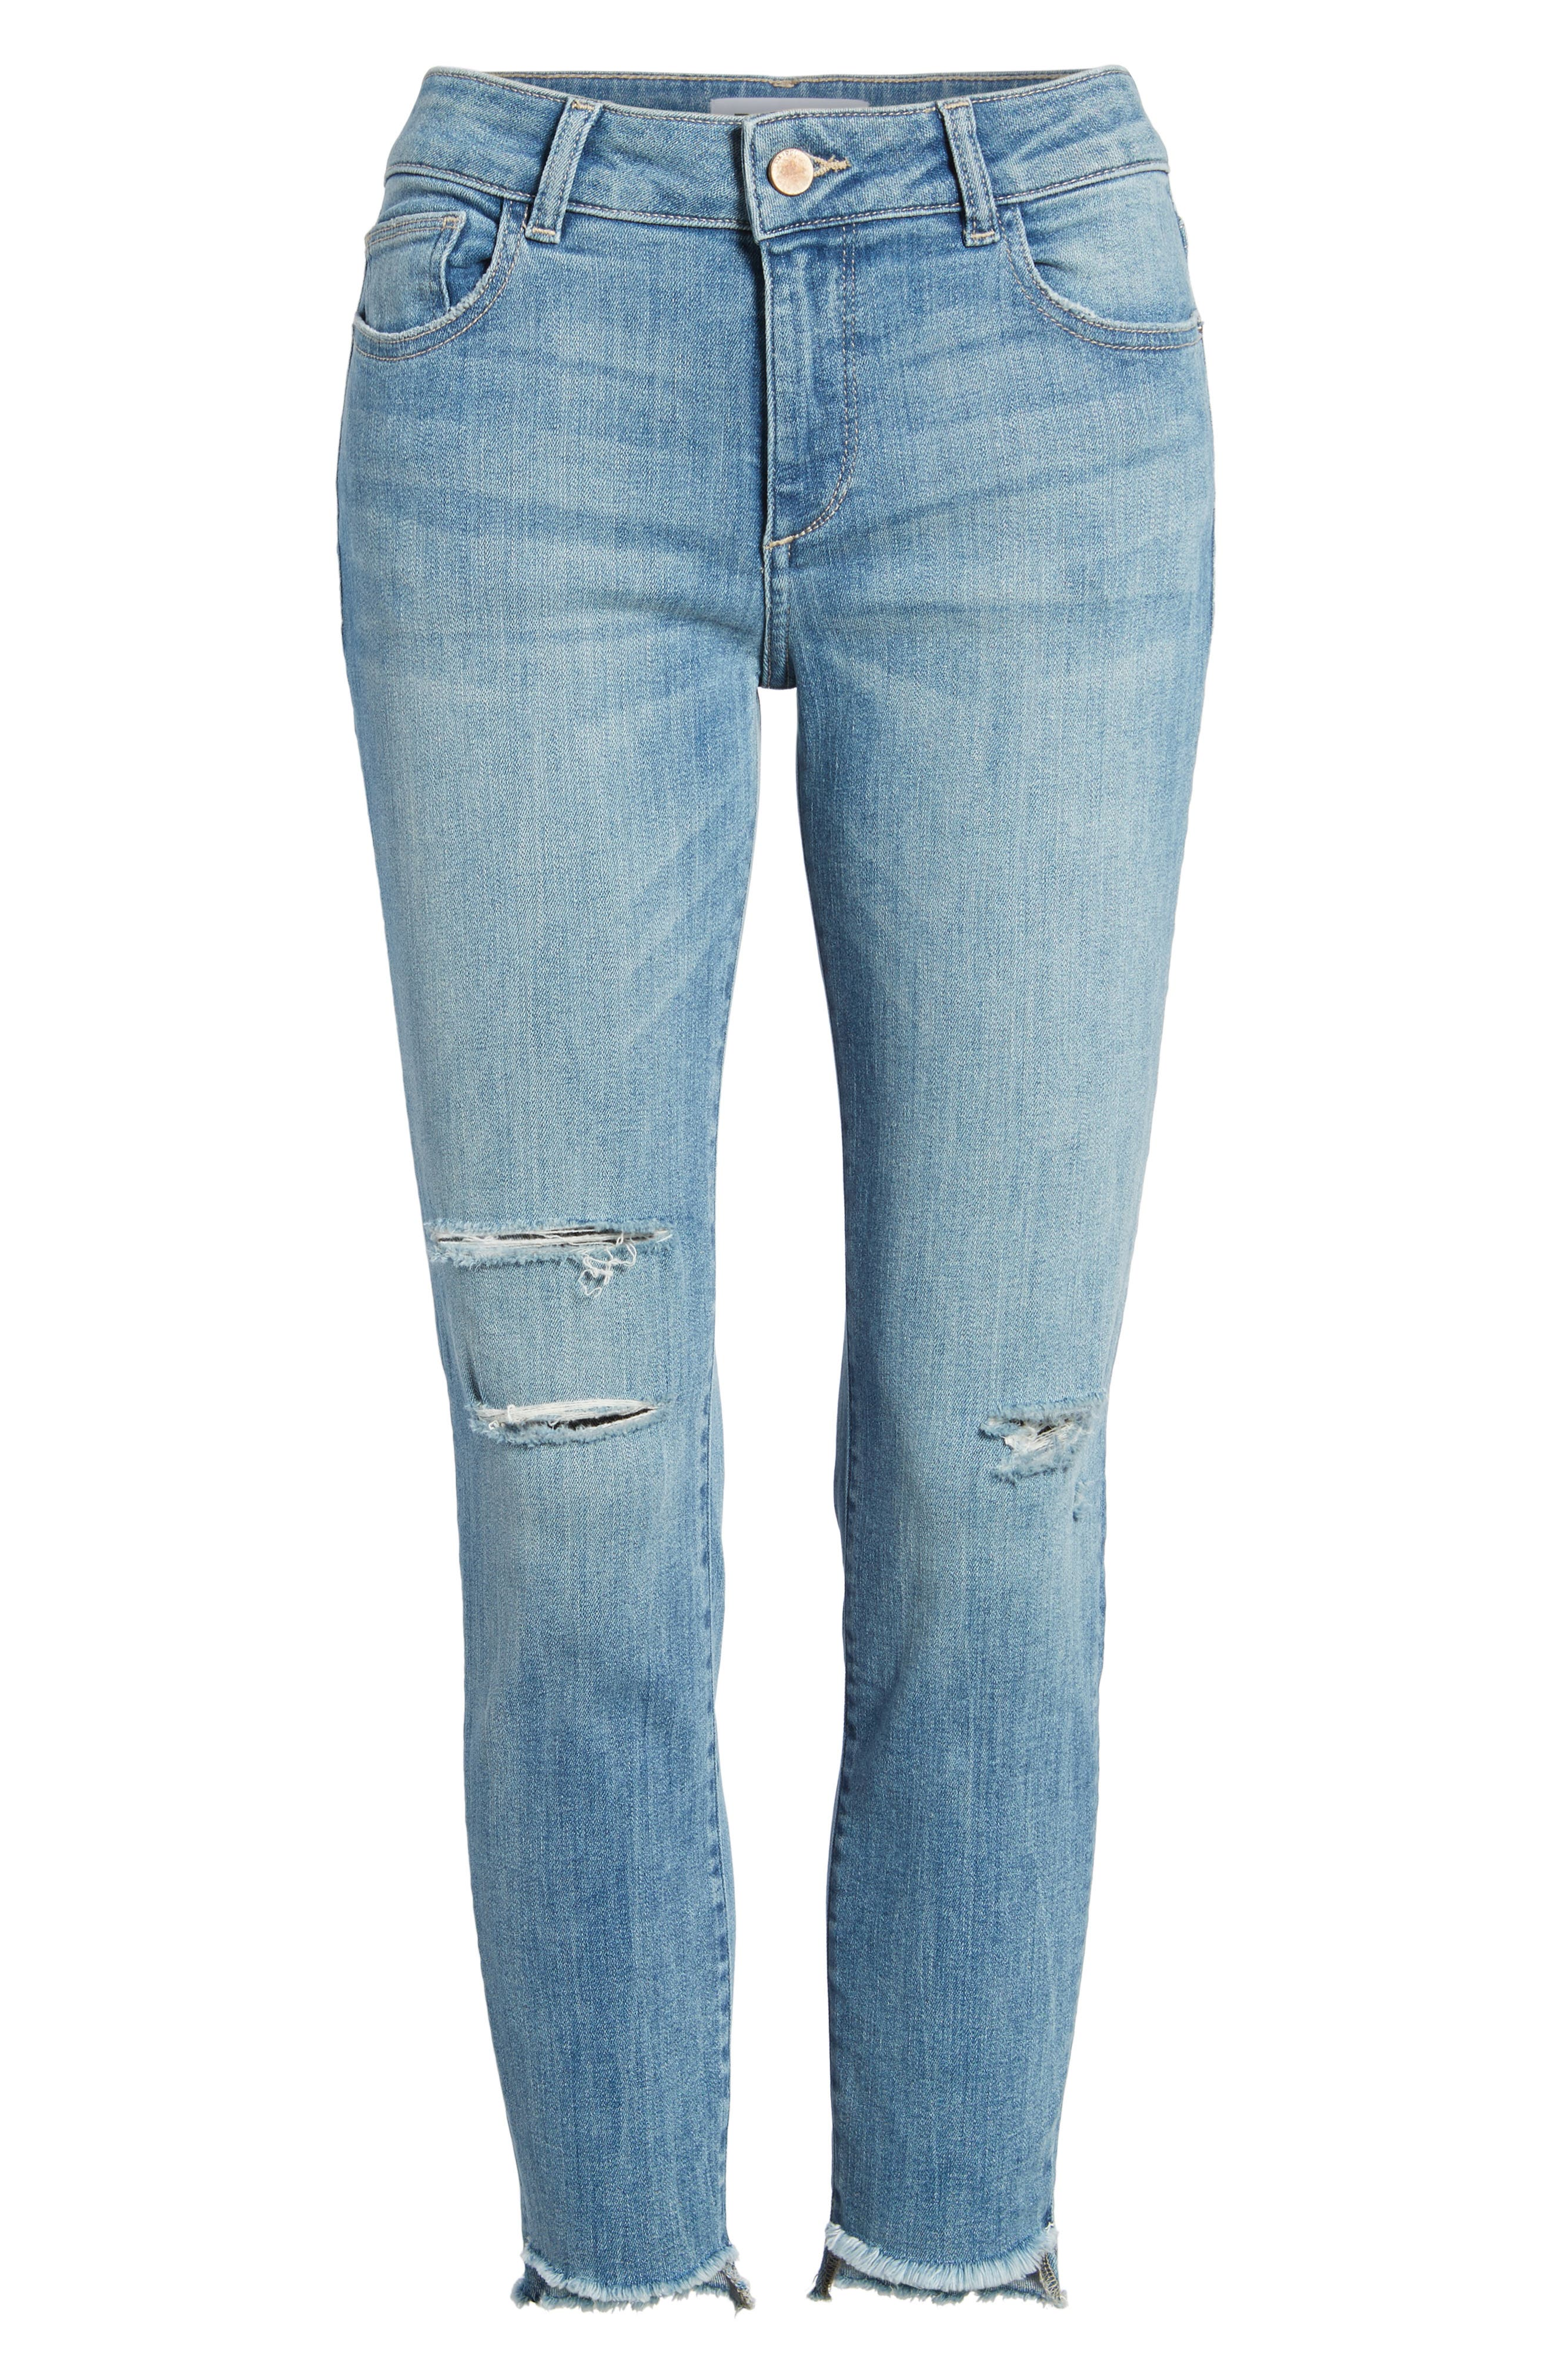 Florence Instasculpt Ripped Crop Skinny Jeans,                             Alternate thumbnail 7, color,                             429